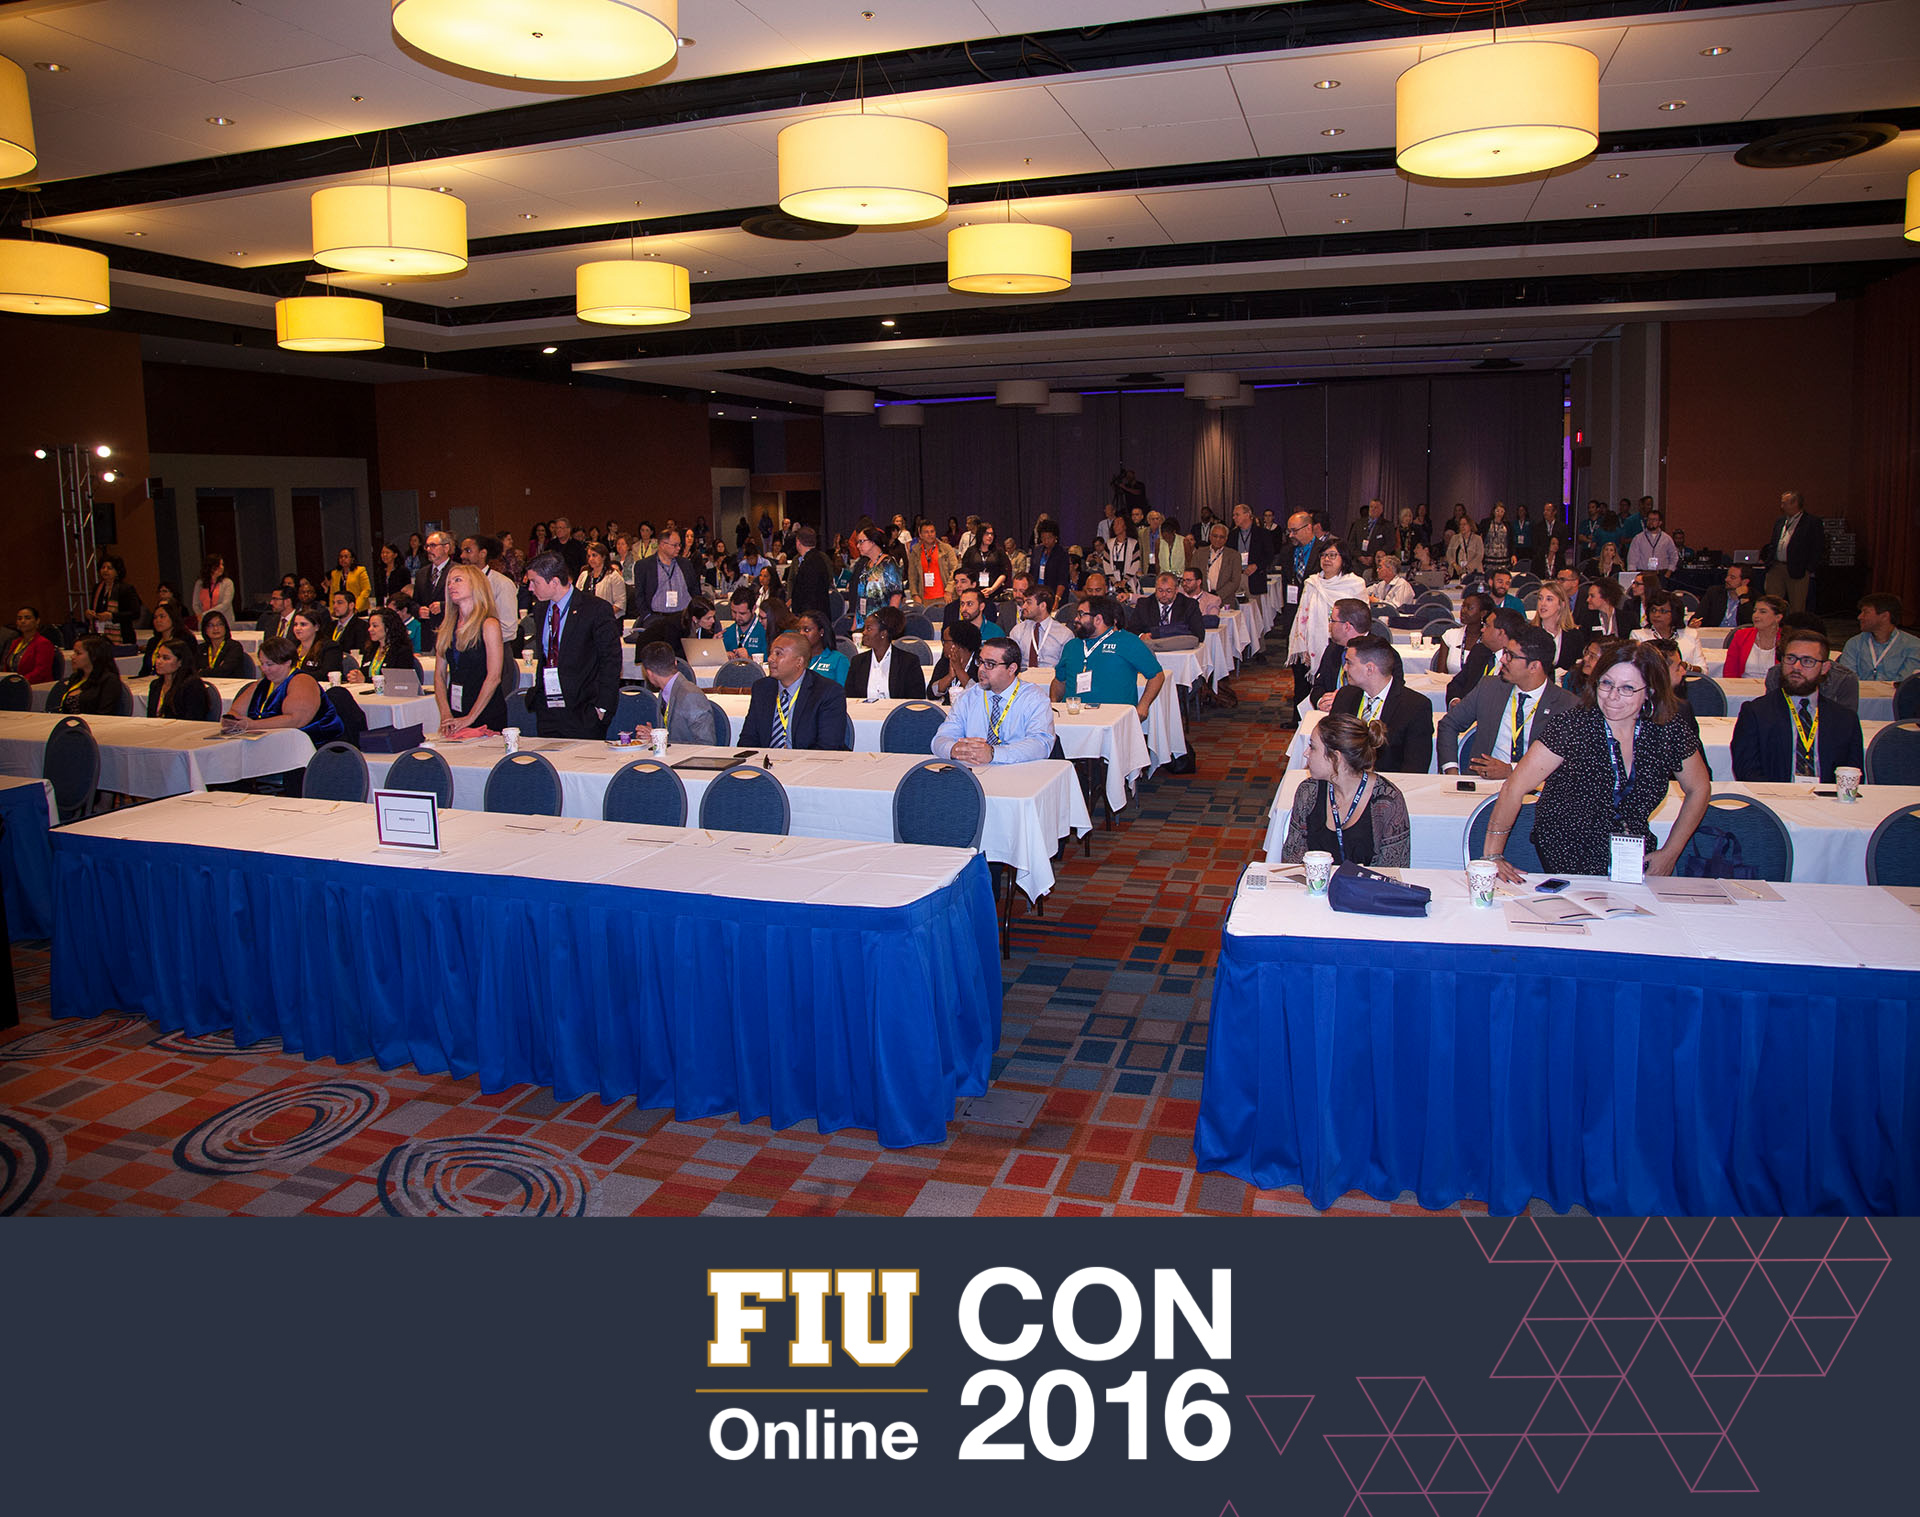 128.jpg FIU Online conference photos